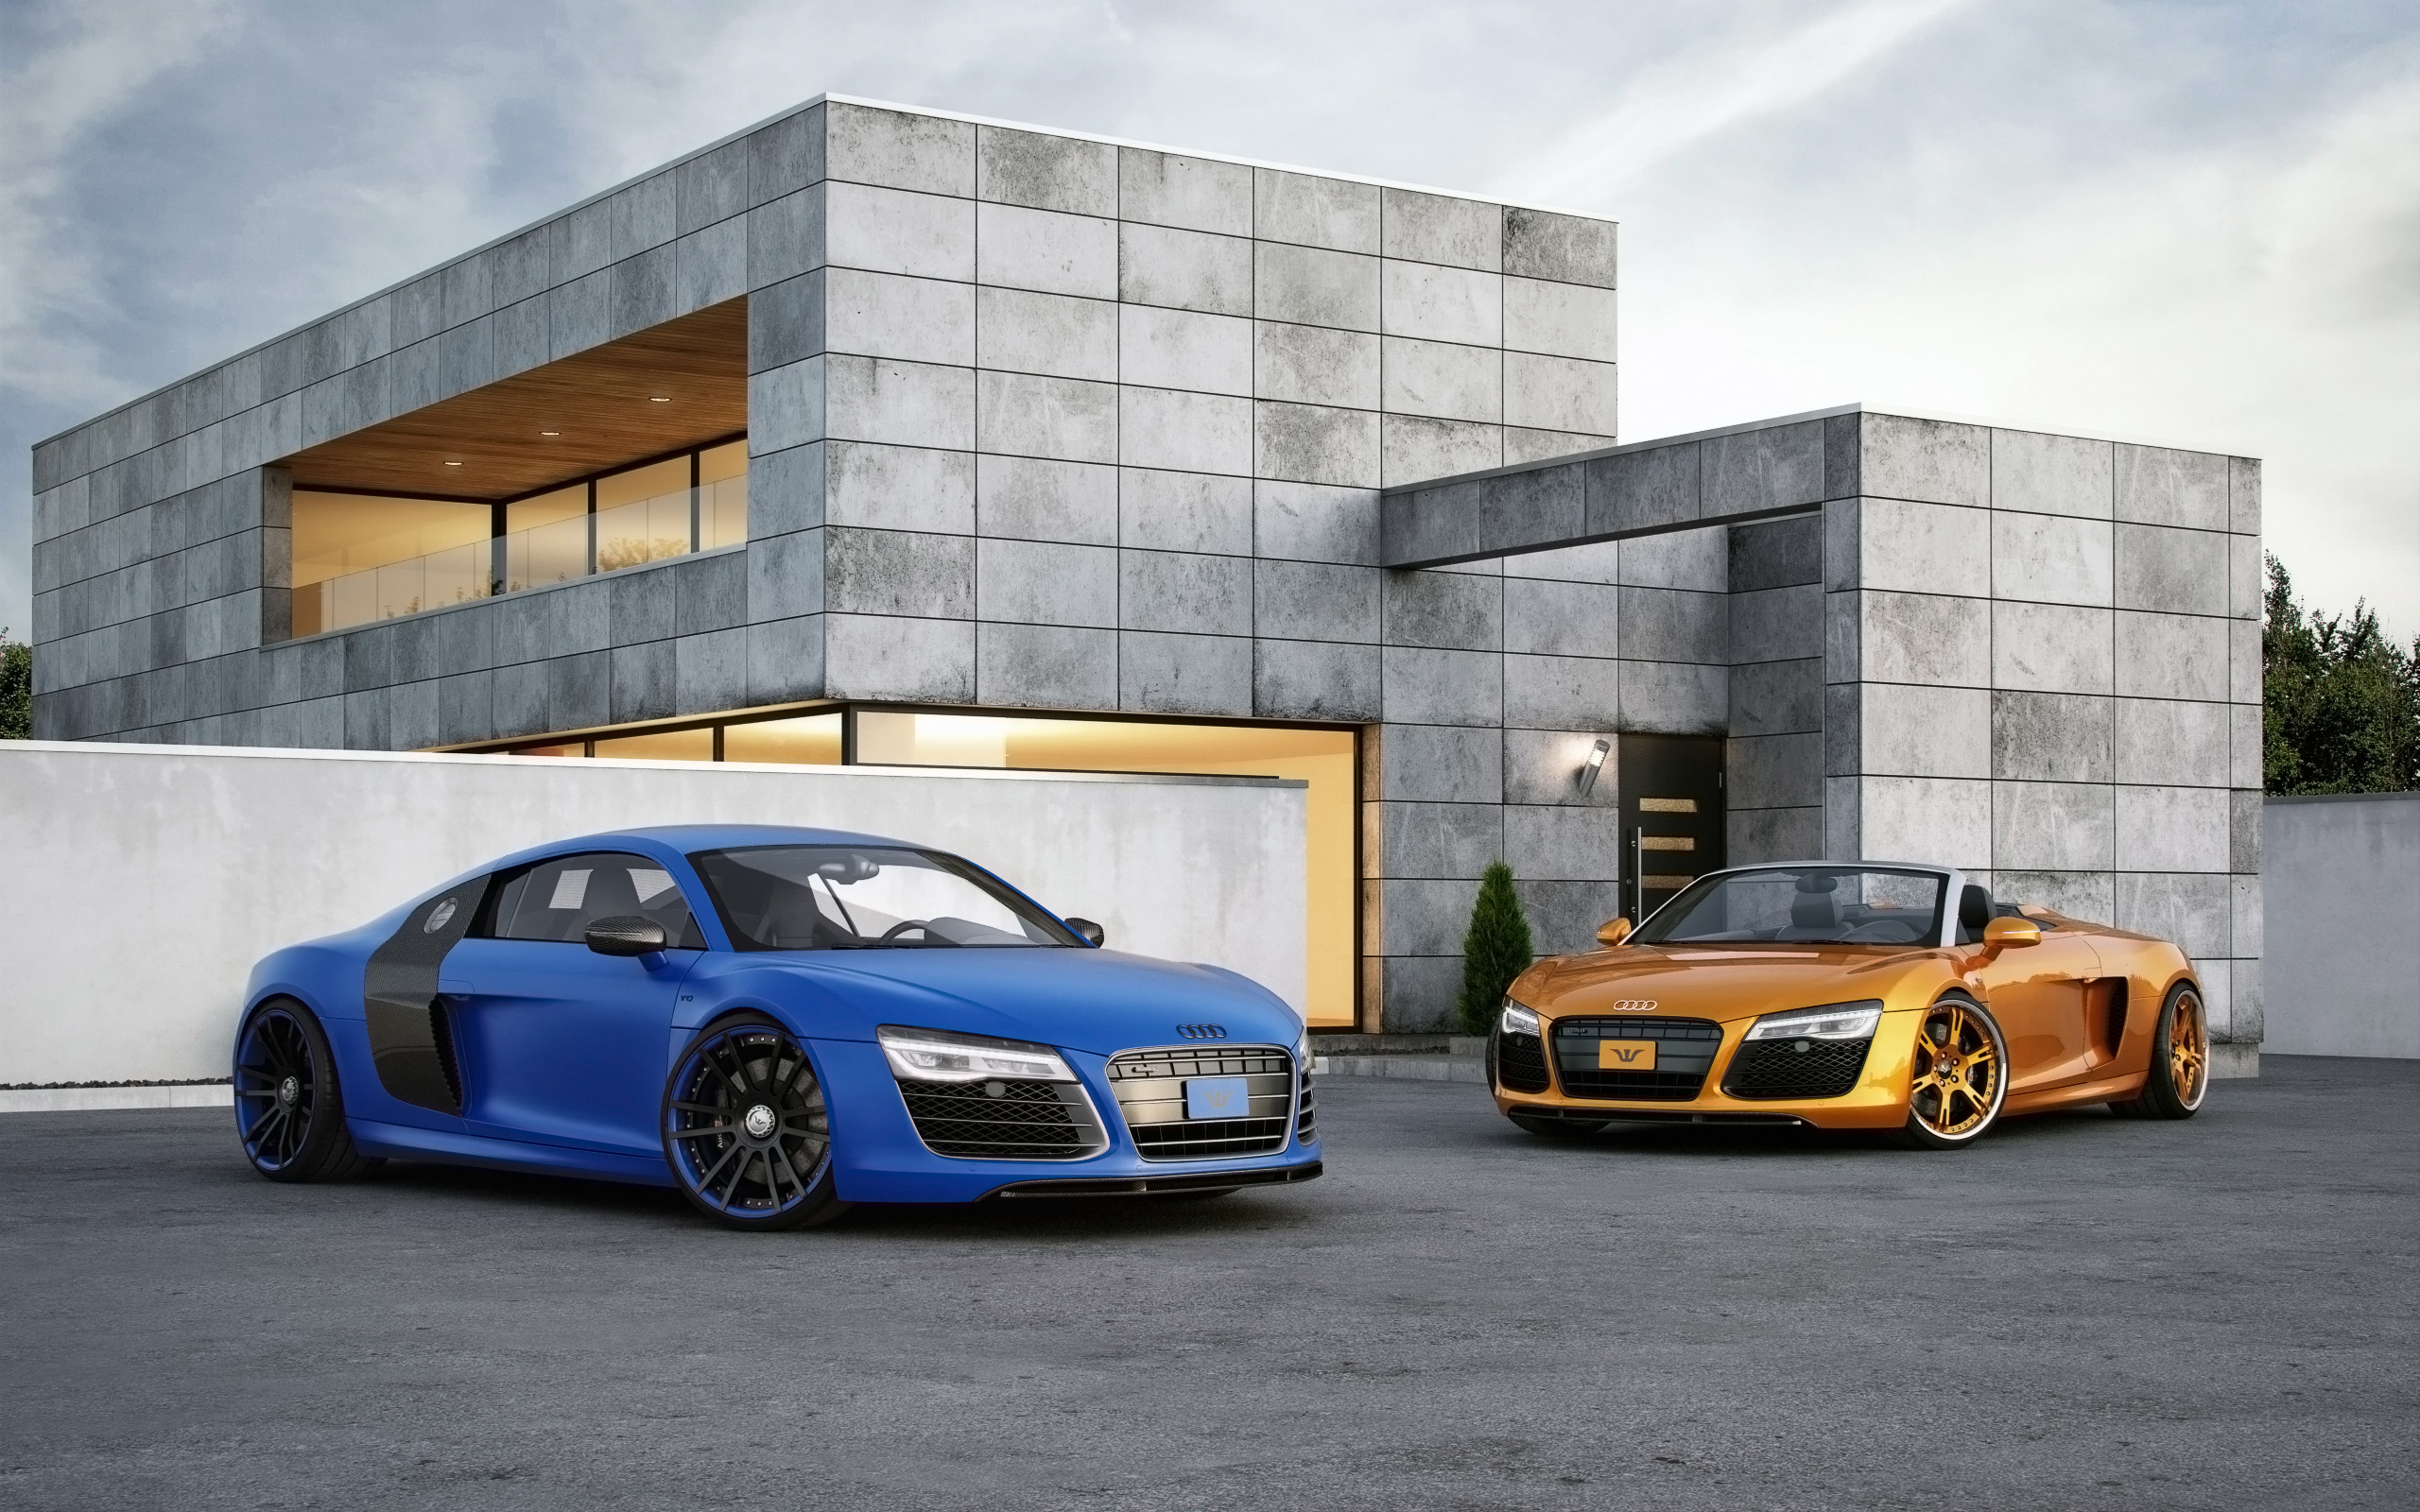 2015 Wheelsandmore Audi R8 V10 Wallpaper Hd Car Wallpapers Id 5884